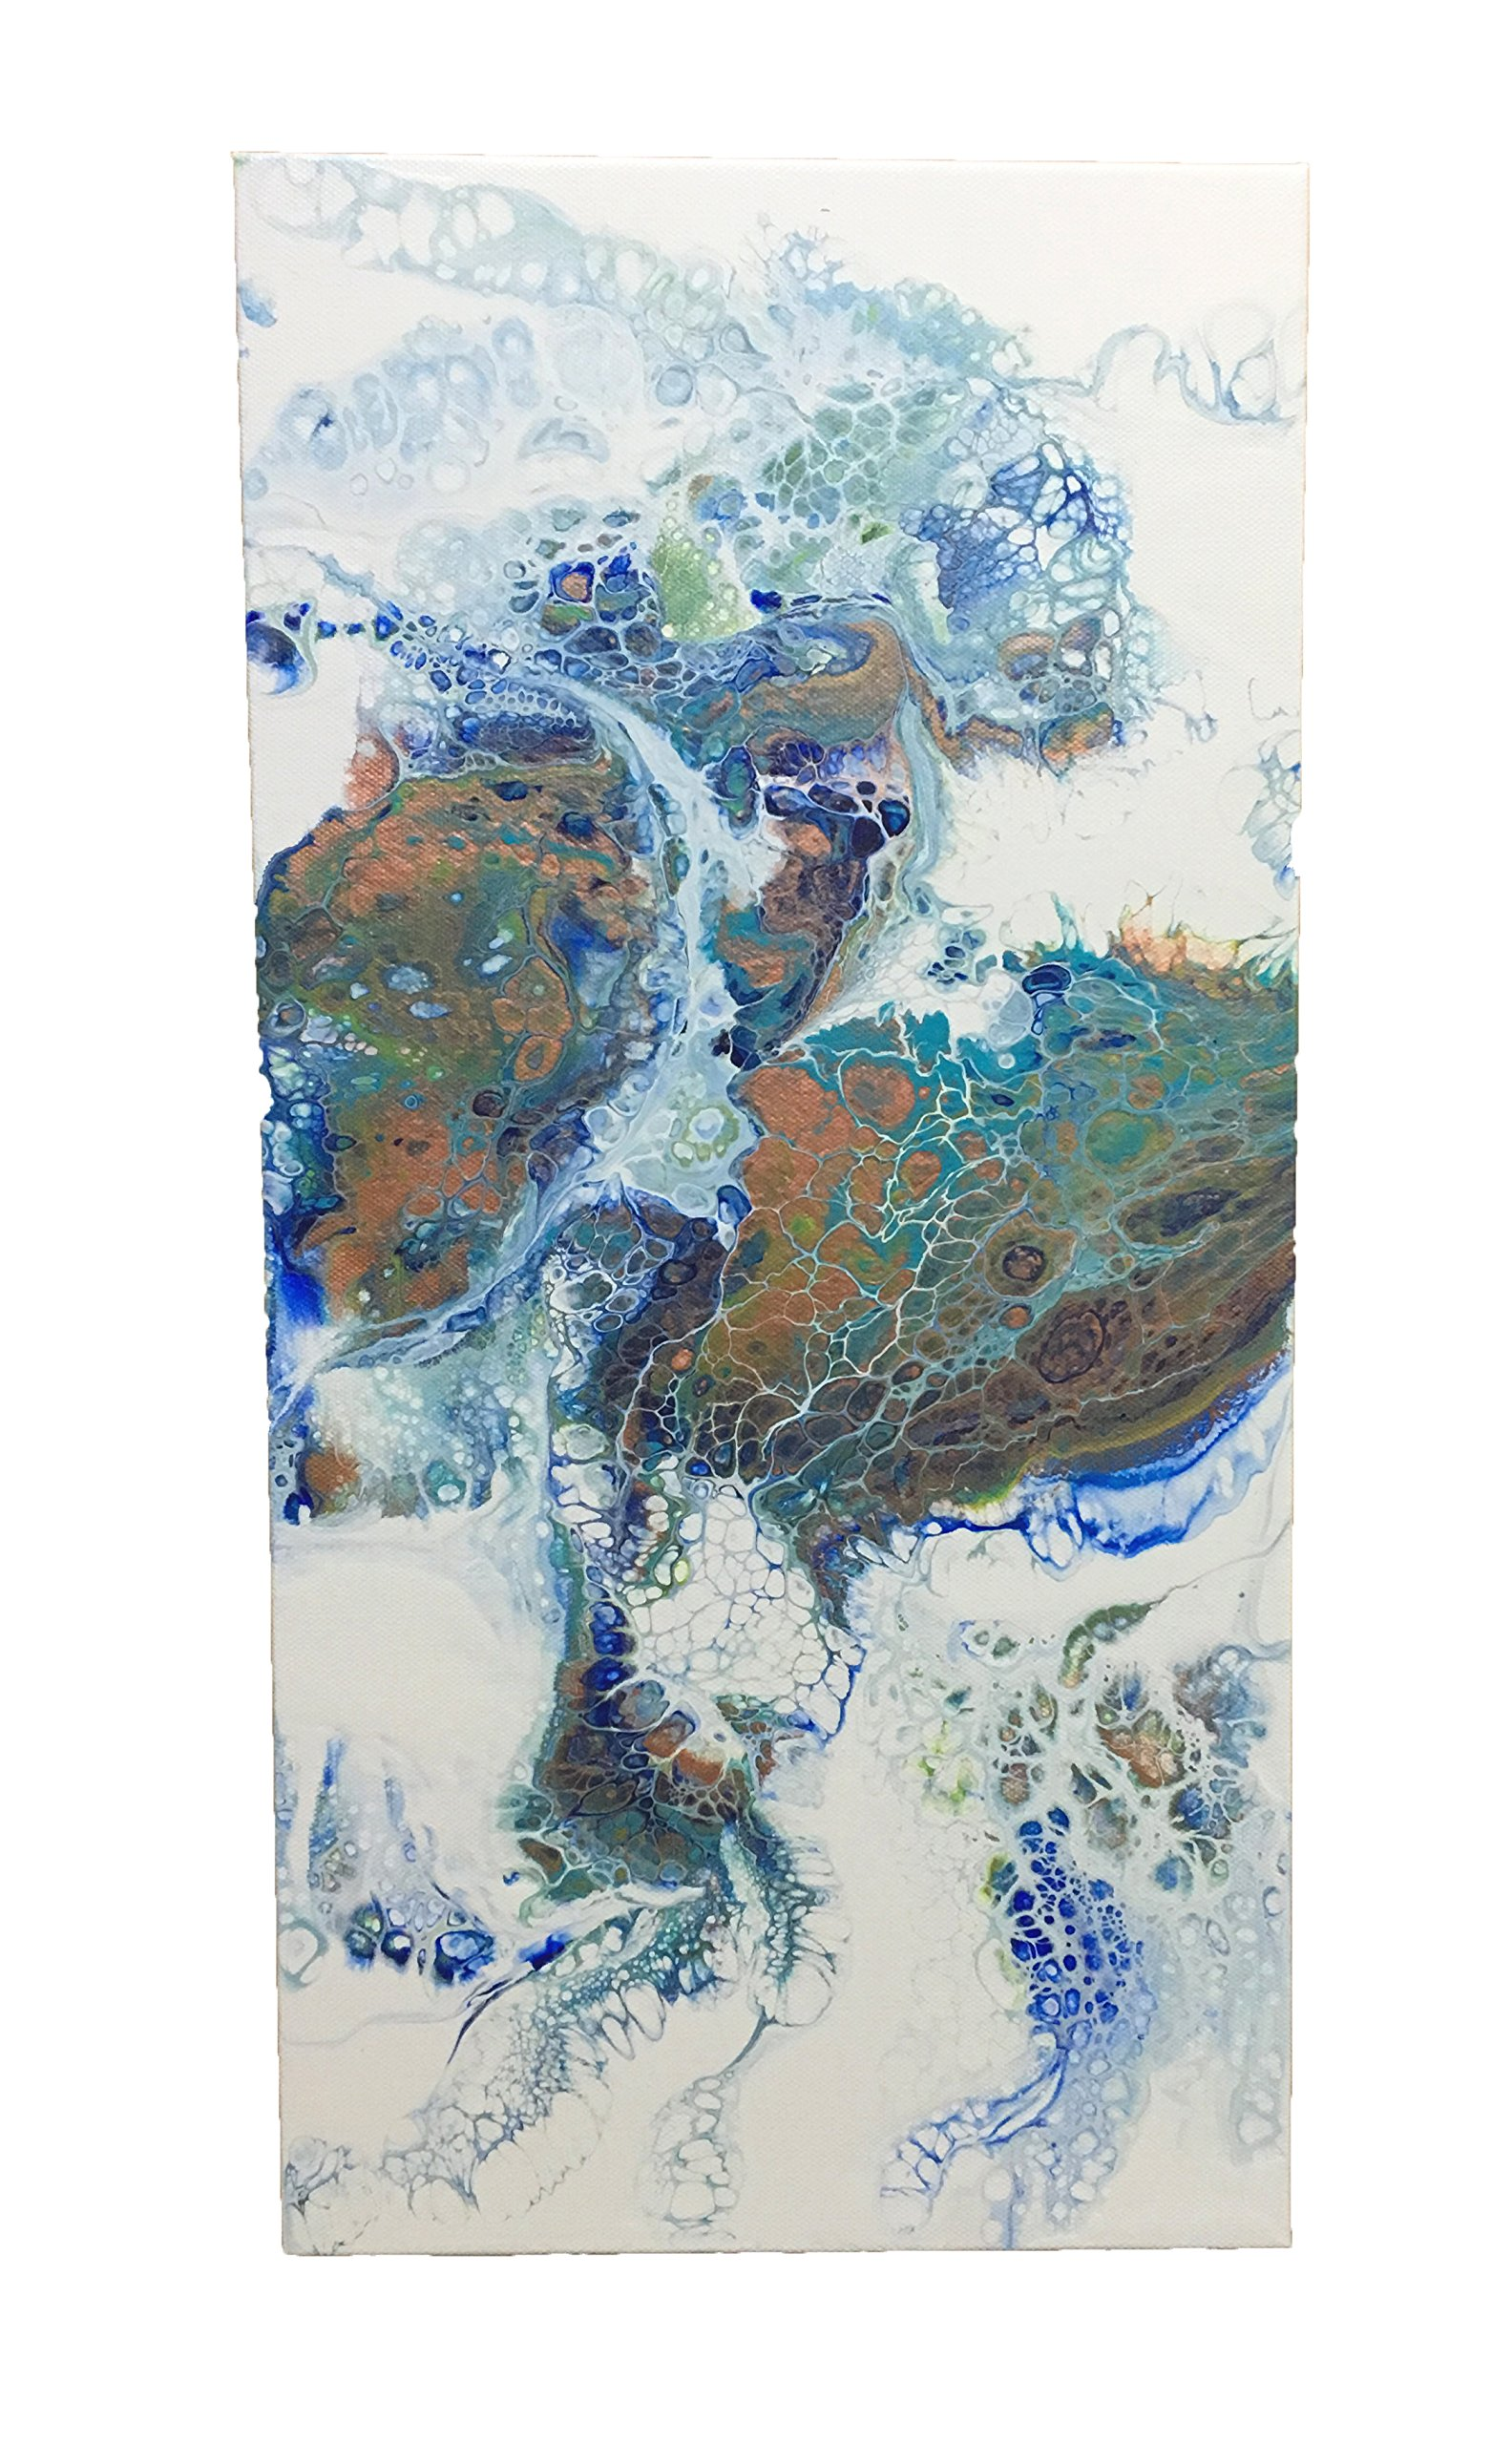 Original Fluid Acrylic Abstract 10'' x 20'' on Stretched Canvas ''Other Worlds II''